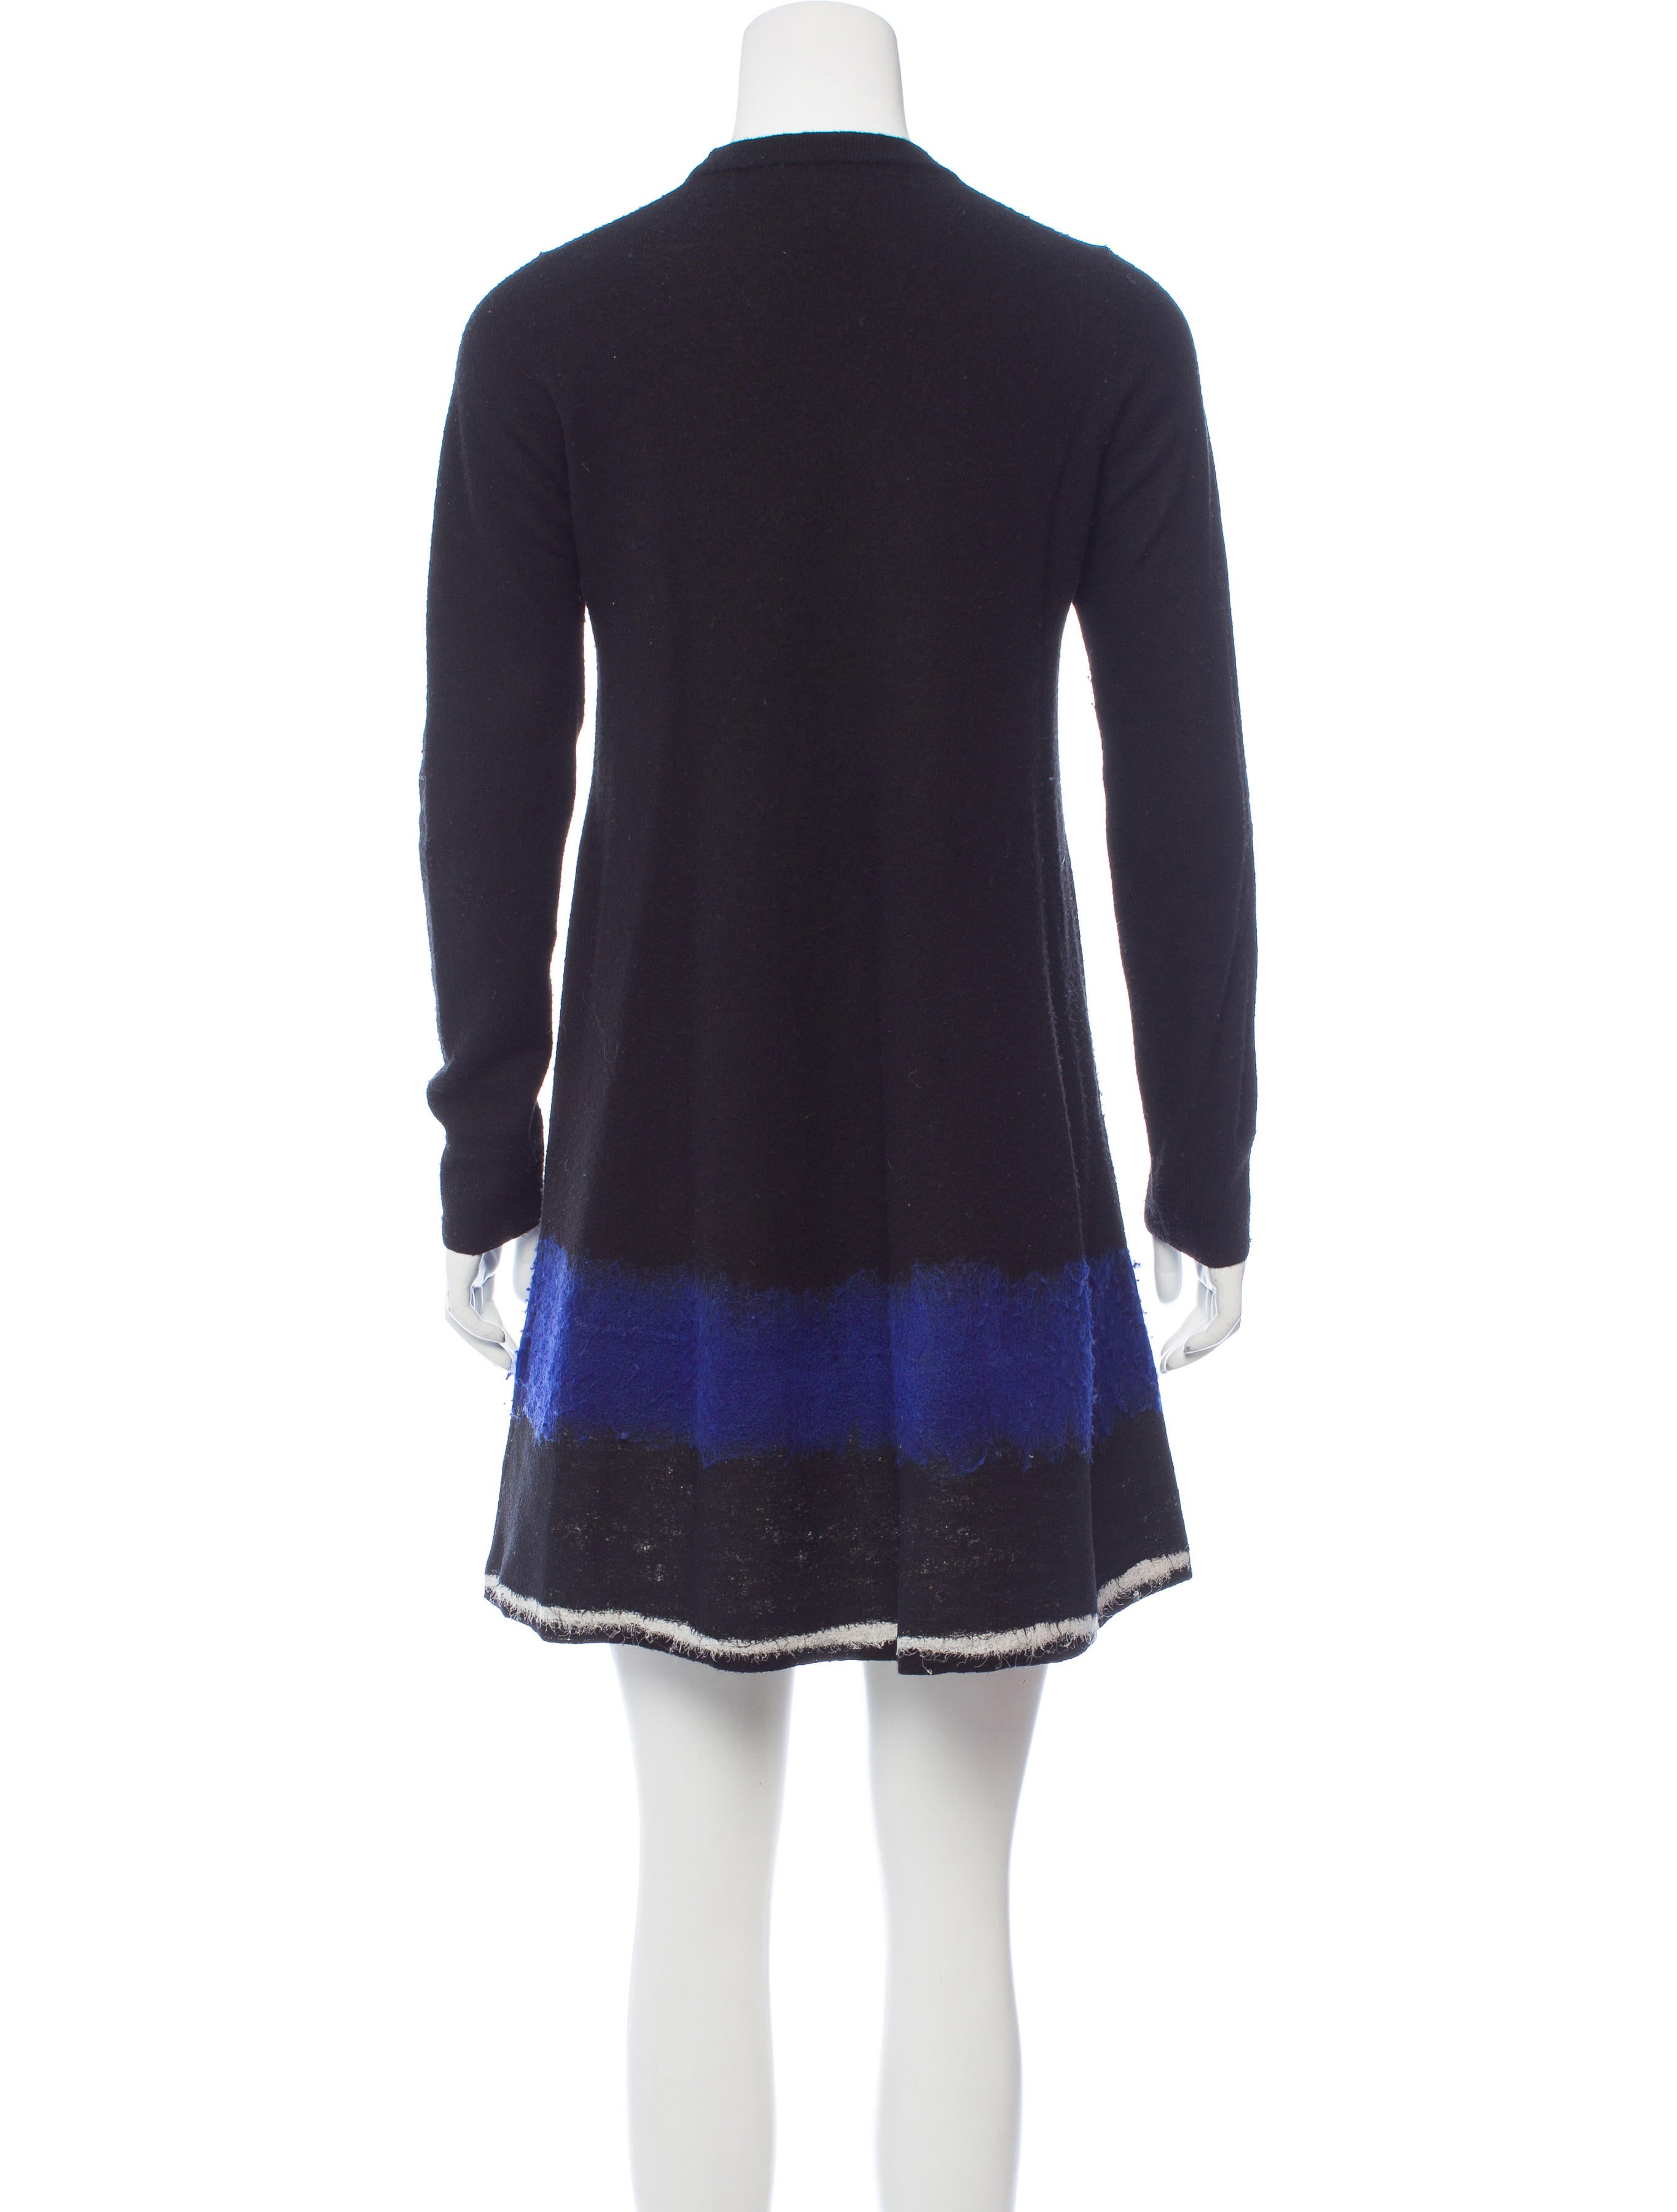 Proenza Schouler Wool Sweater Dress - Clothing - PRO36521 | The RealReal